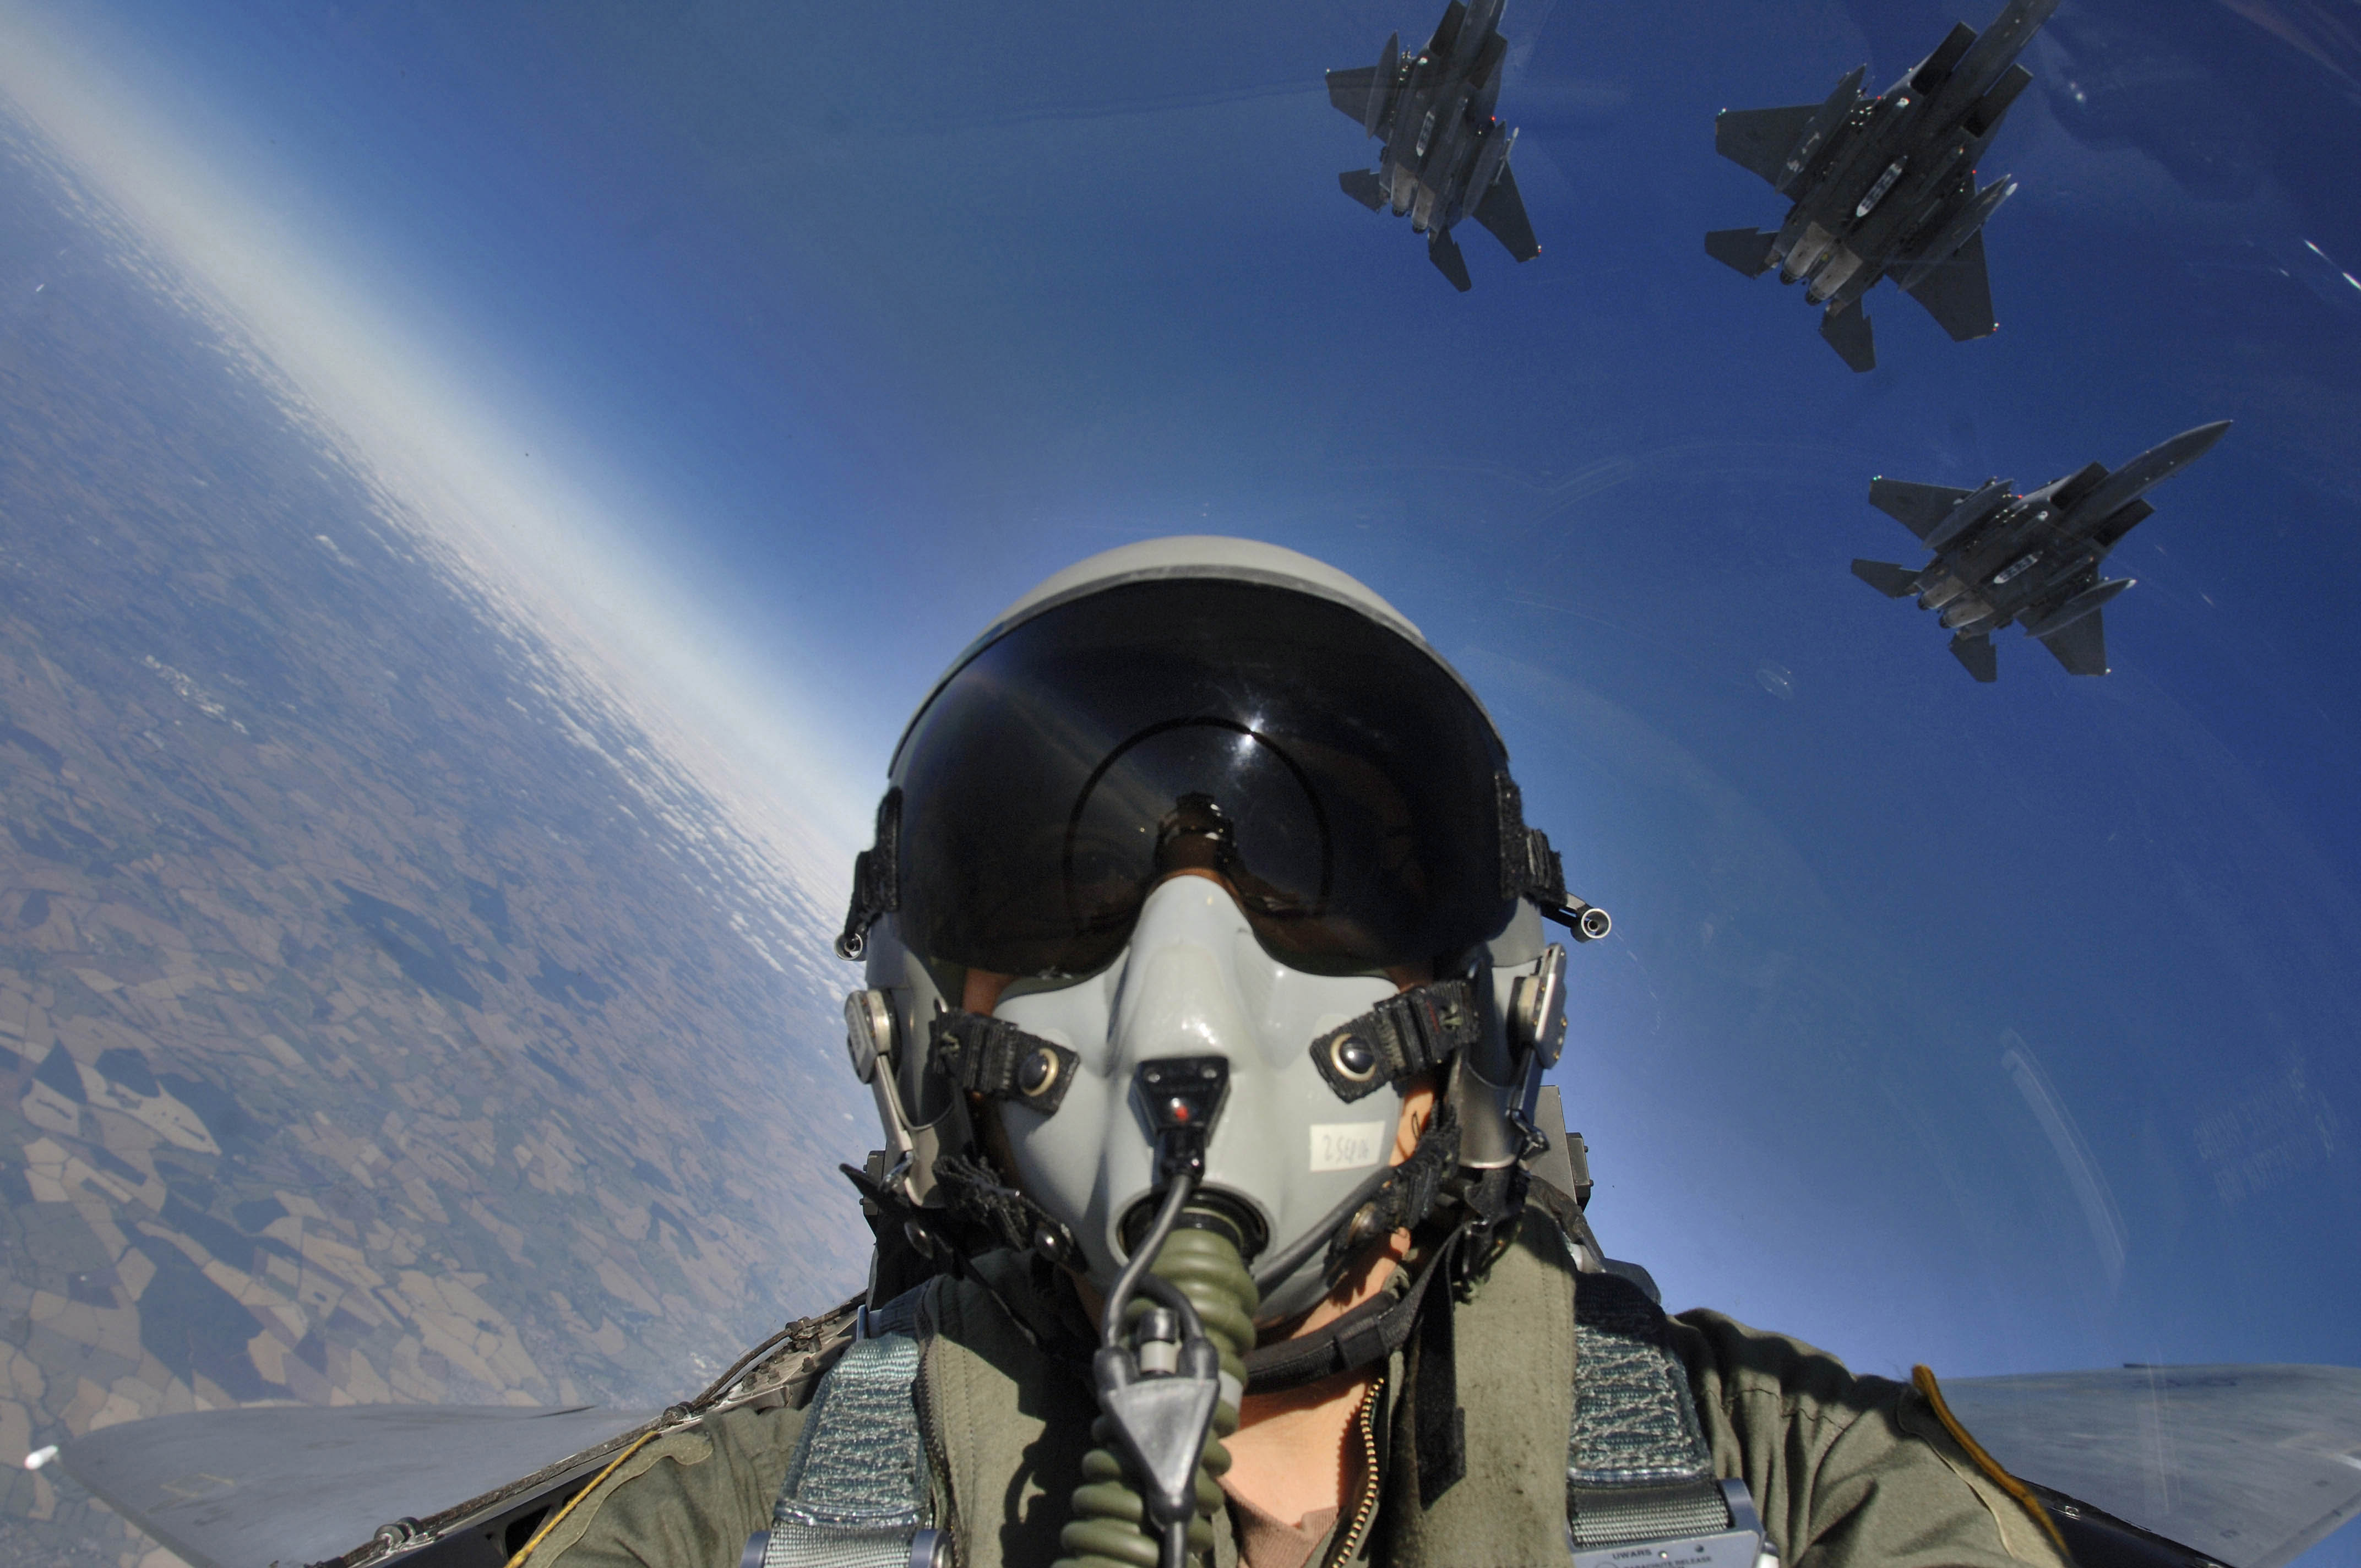 Daily Life Of A Fighter Pilot